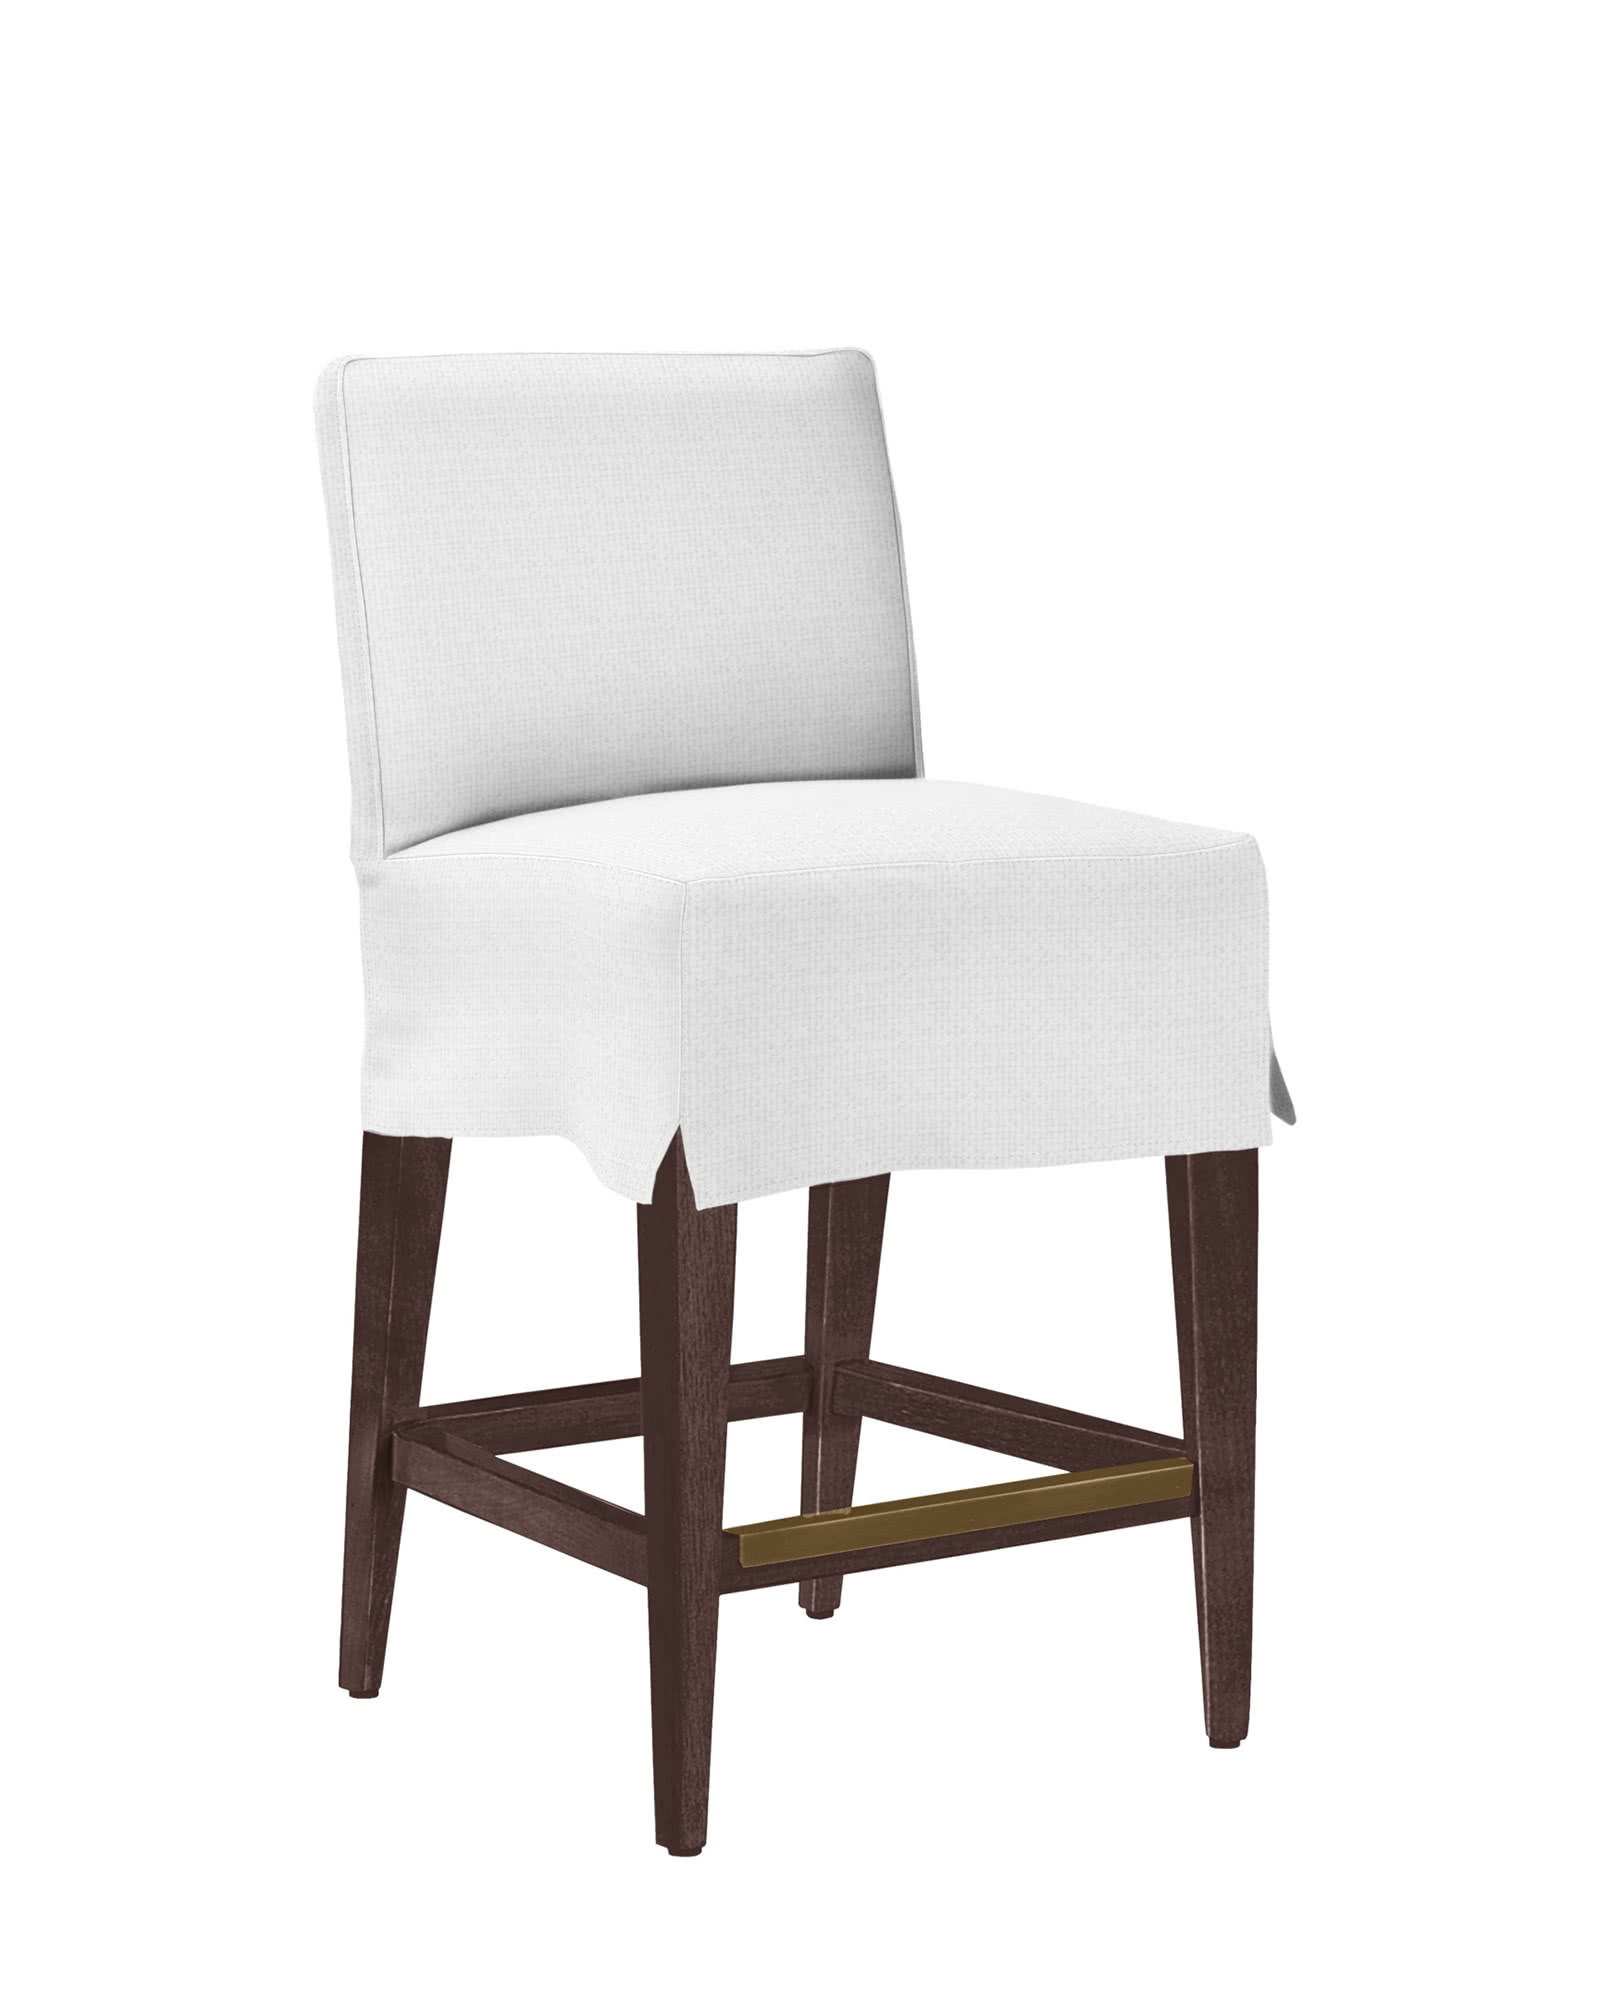 Jackson Counter Stool Slipcovered Stools Serena And Lily